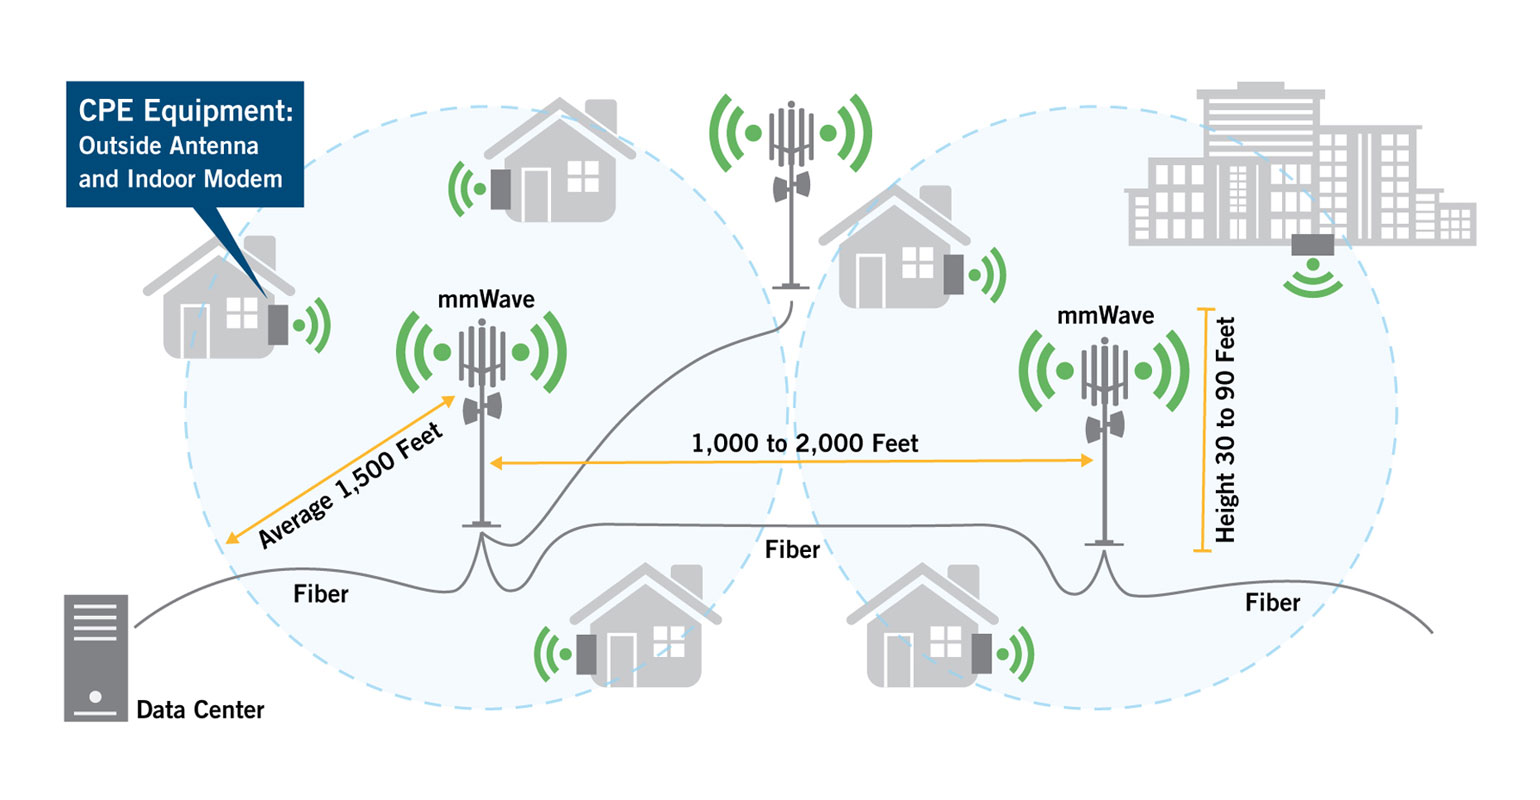 Diagram shows coverage cells for 5G internet from indoor and outdoor towers